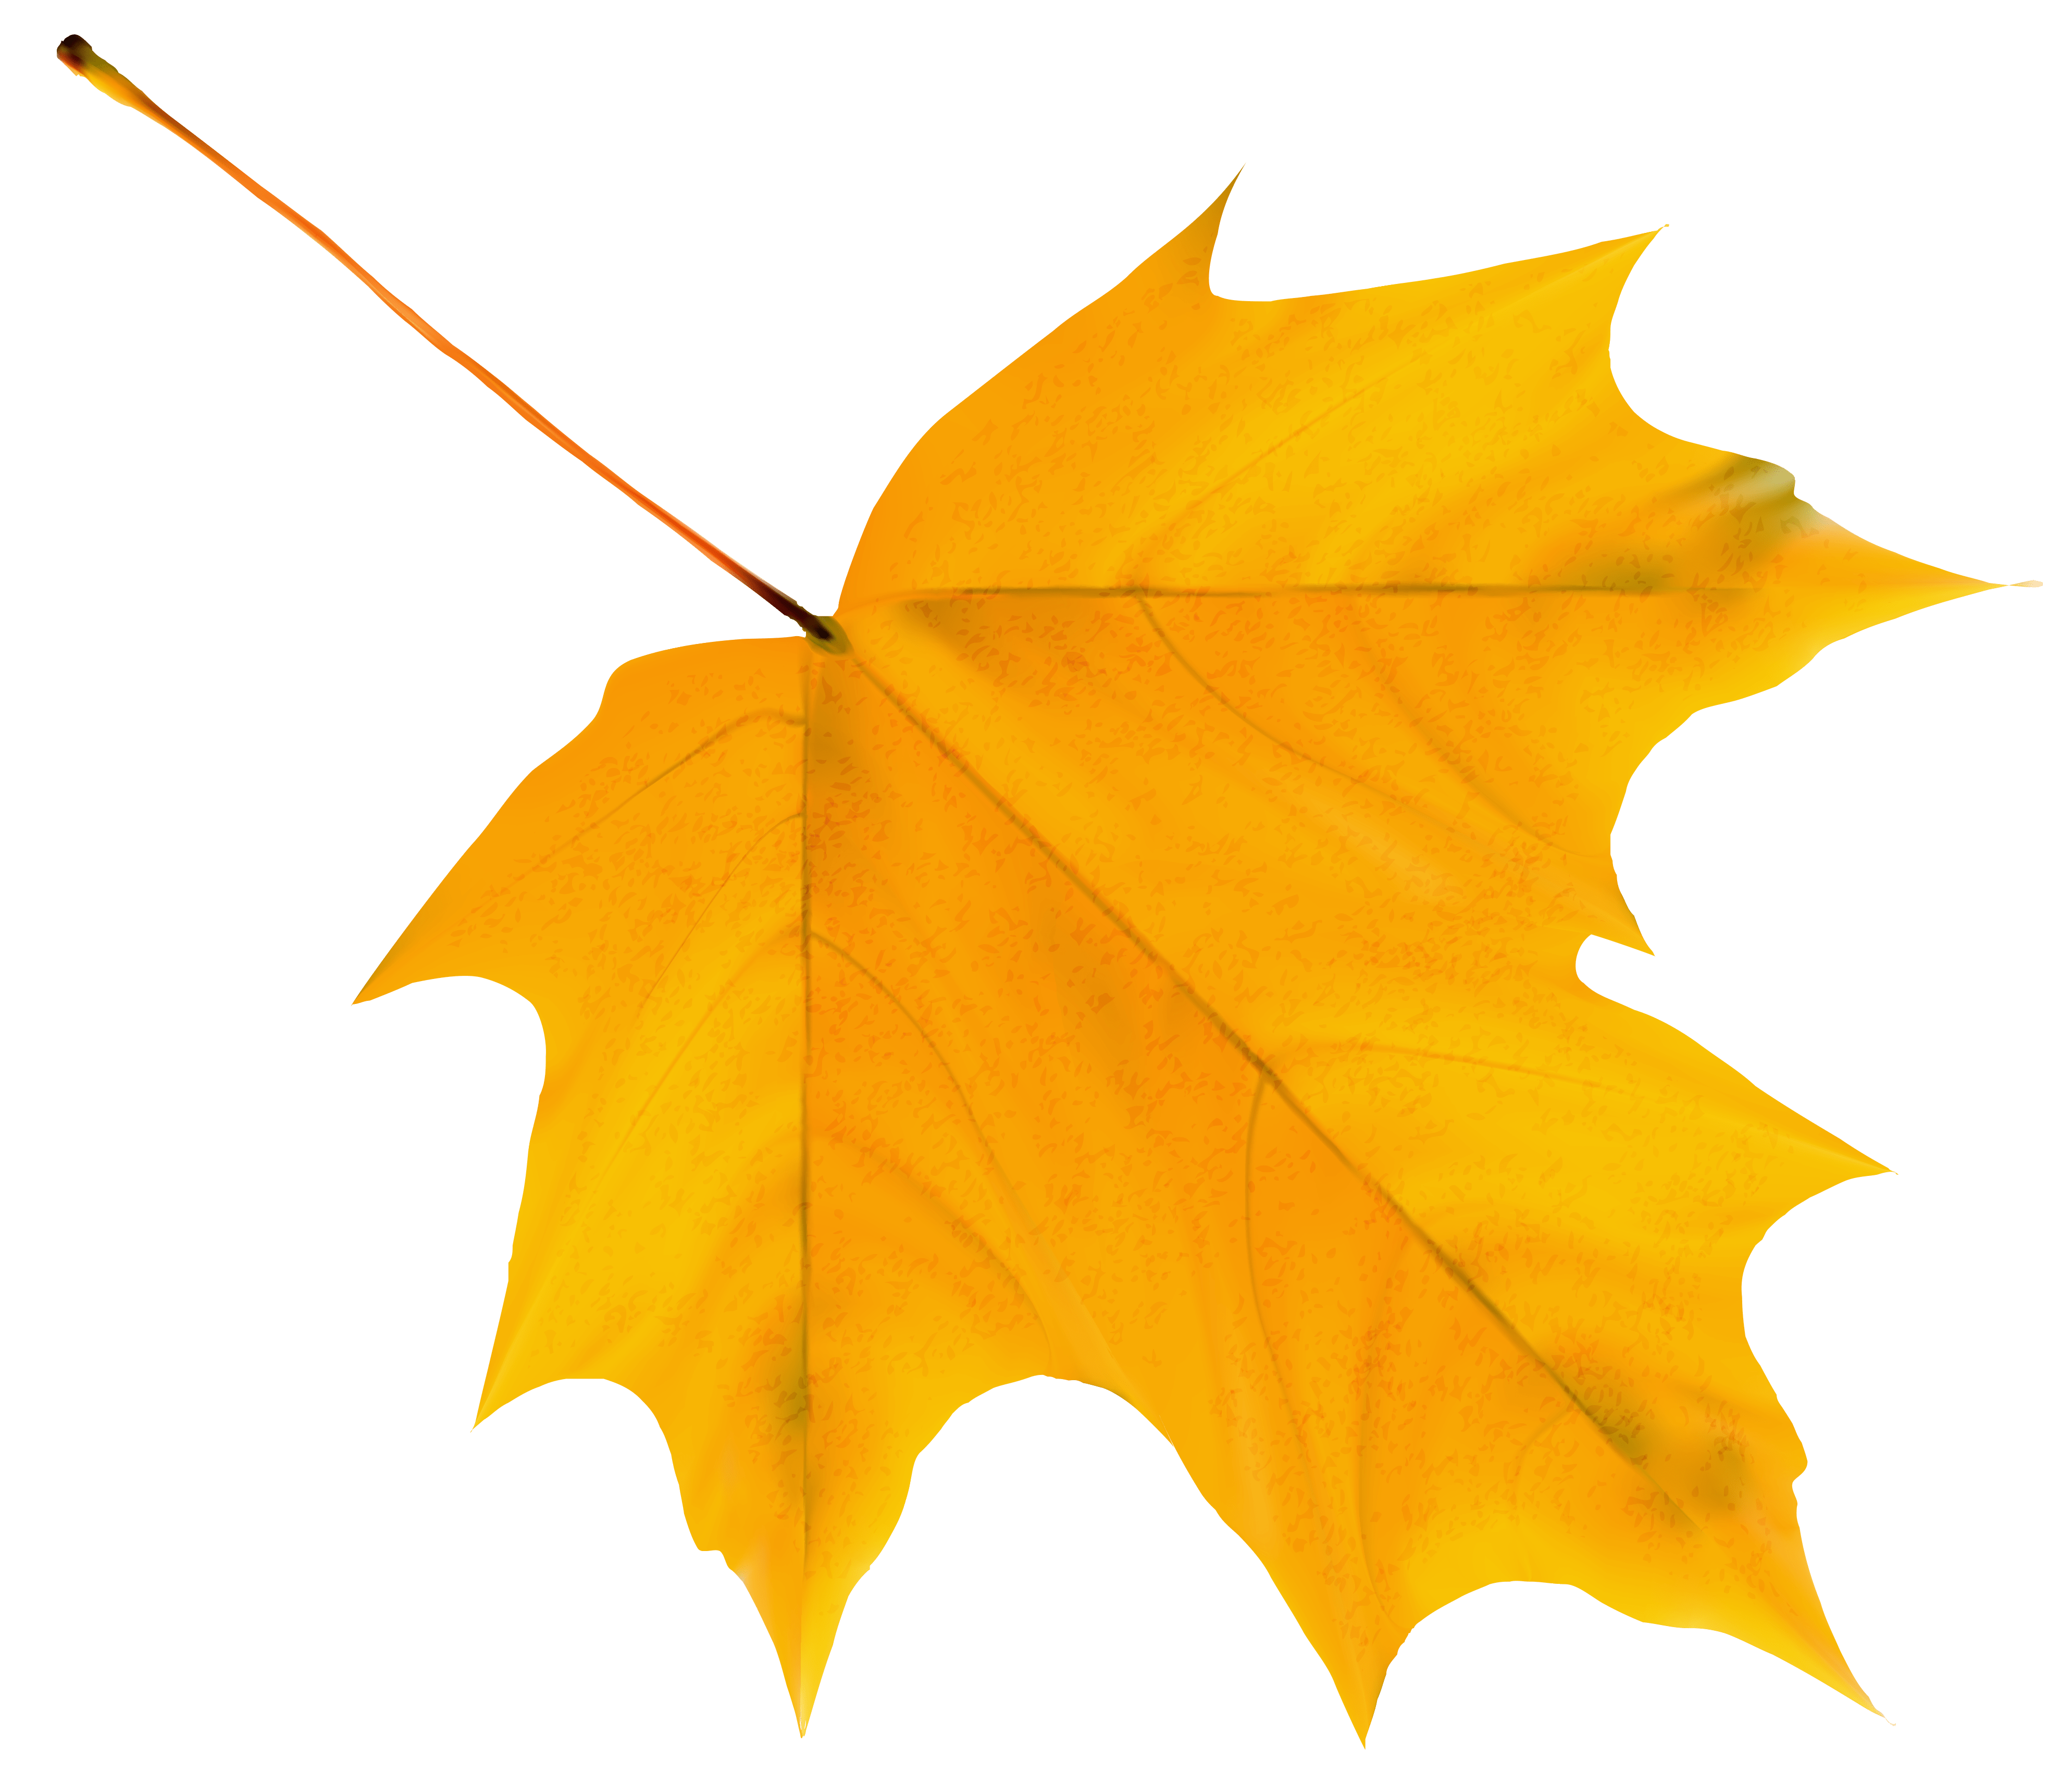 High Resolution Wallpaper Fall Leaves Yellow Autumn Leaf Png Clipart Image Gallery